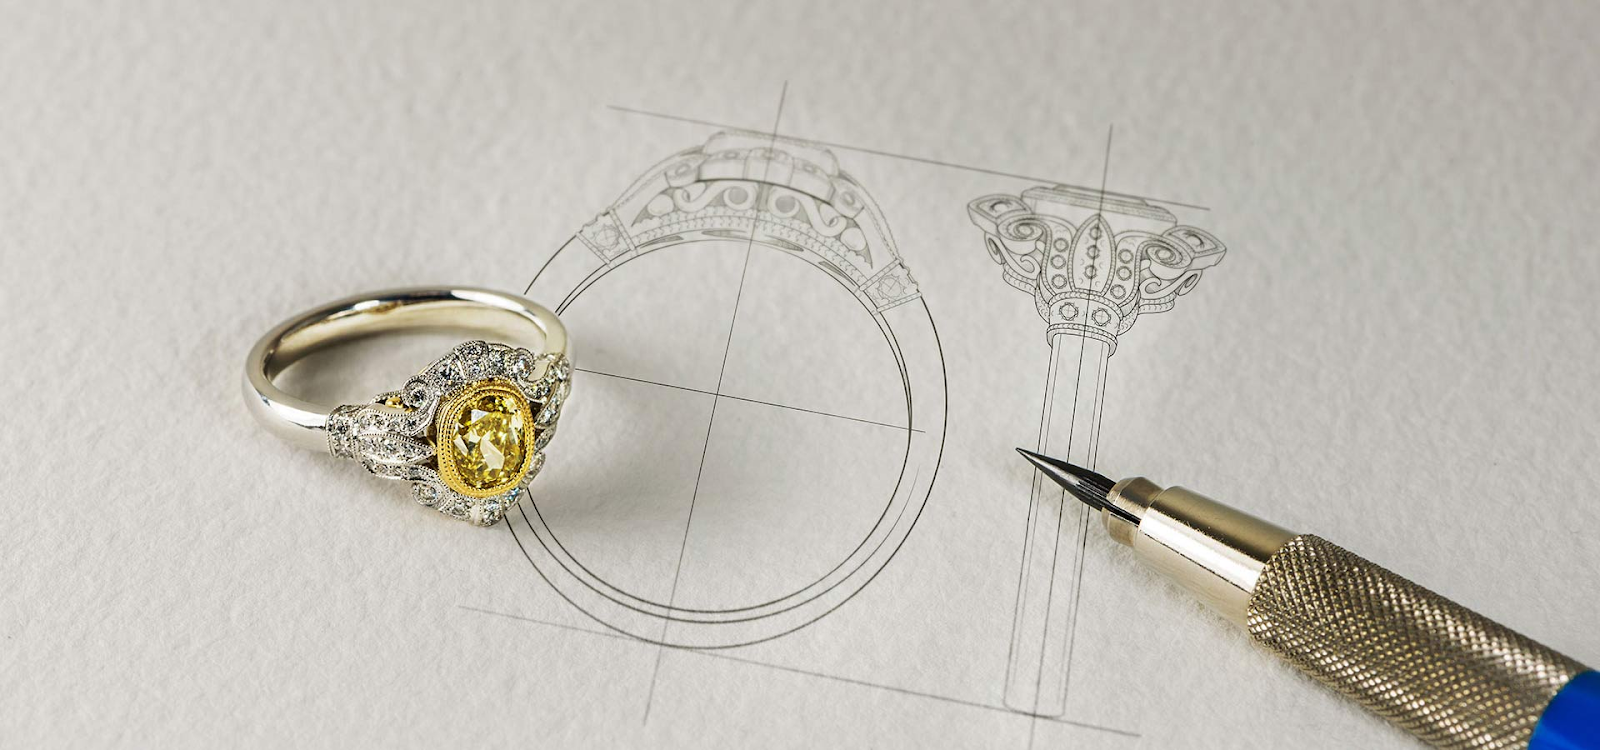 Should You Design Your Own Diamond Engagement Rings?